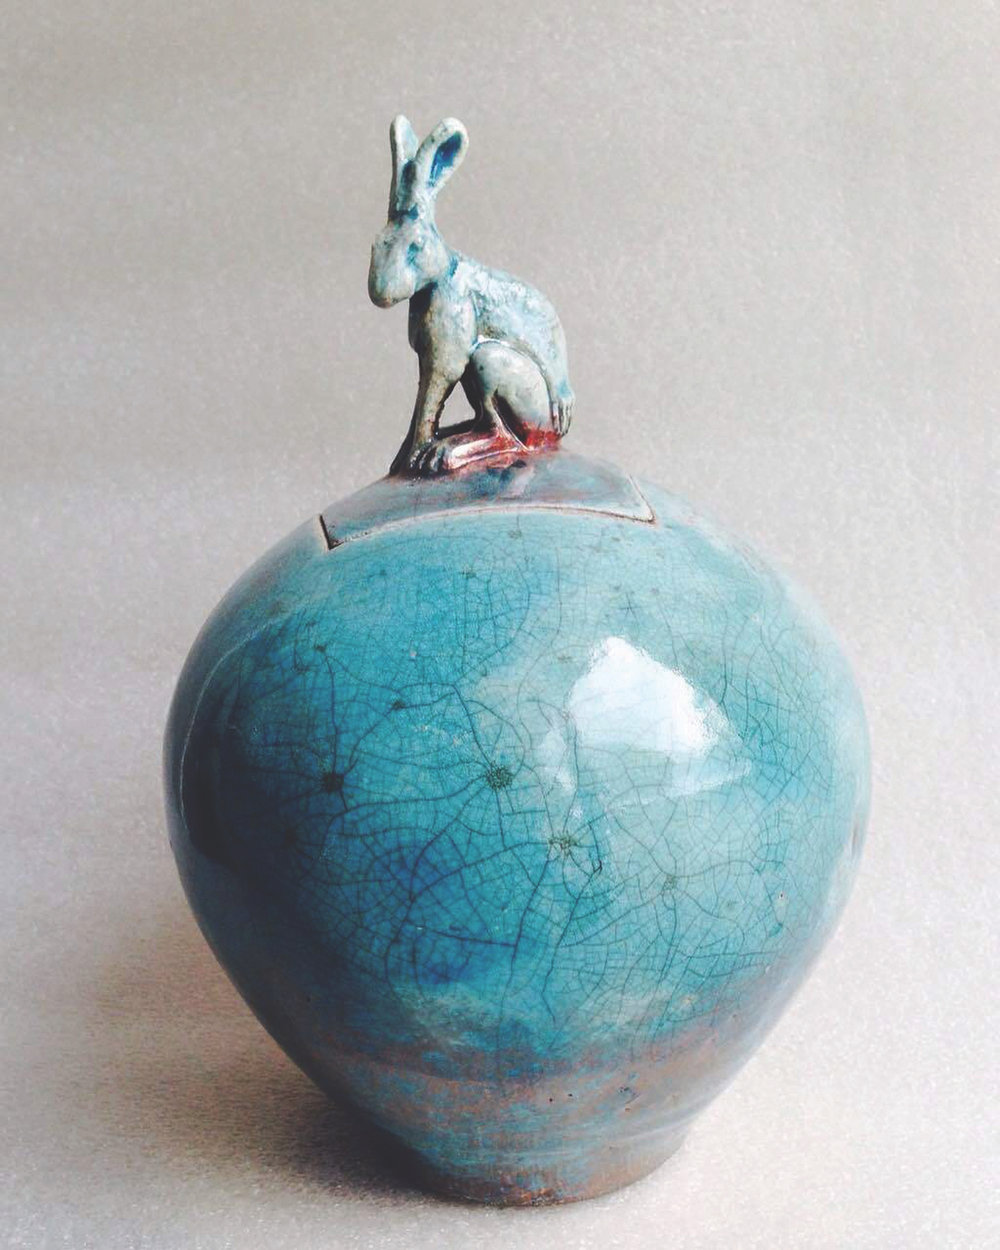 Raku pot with hare detail by Tom Callery.